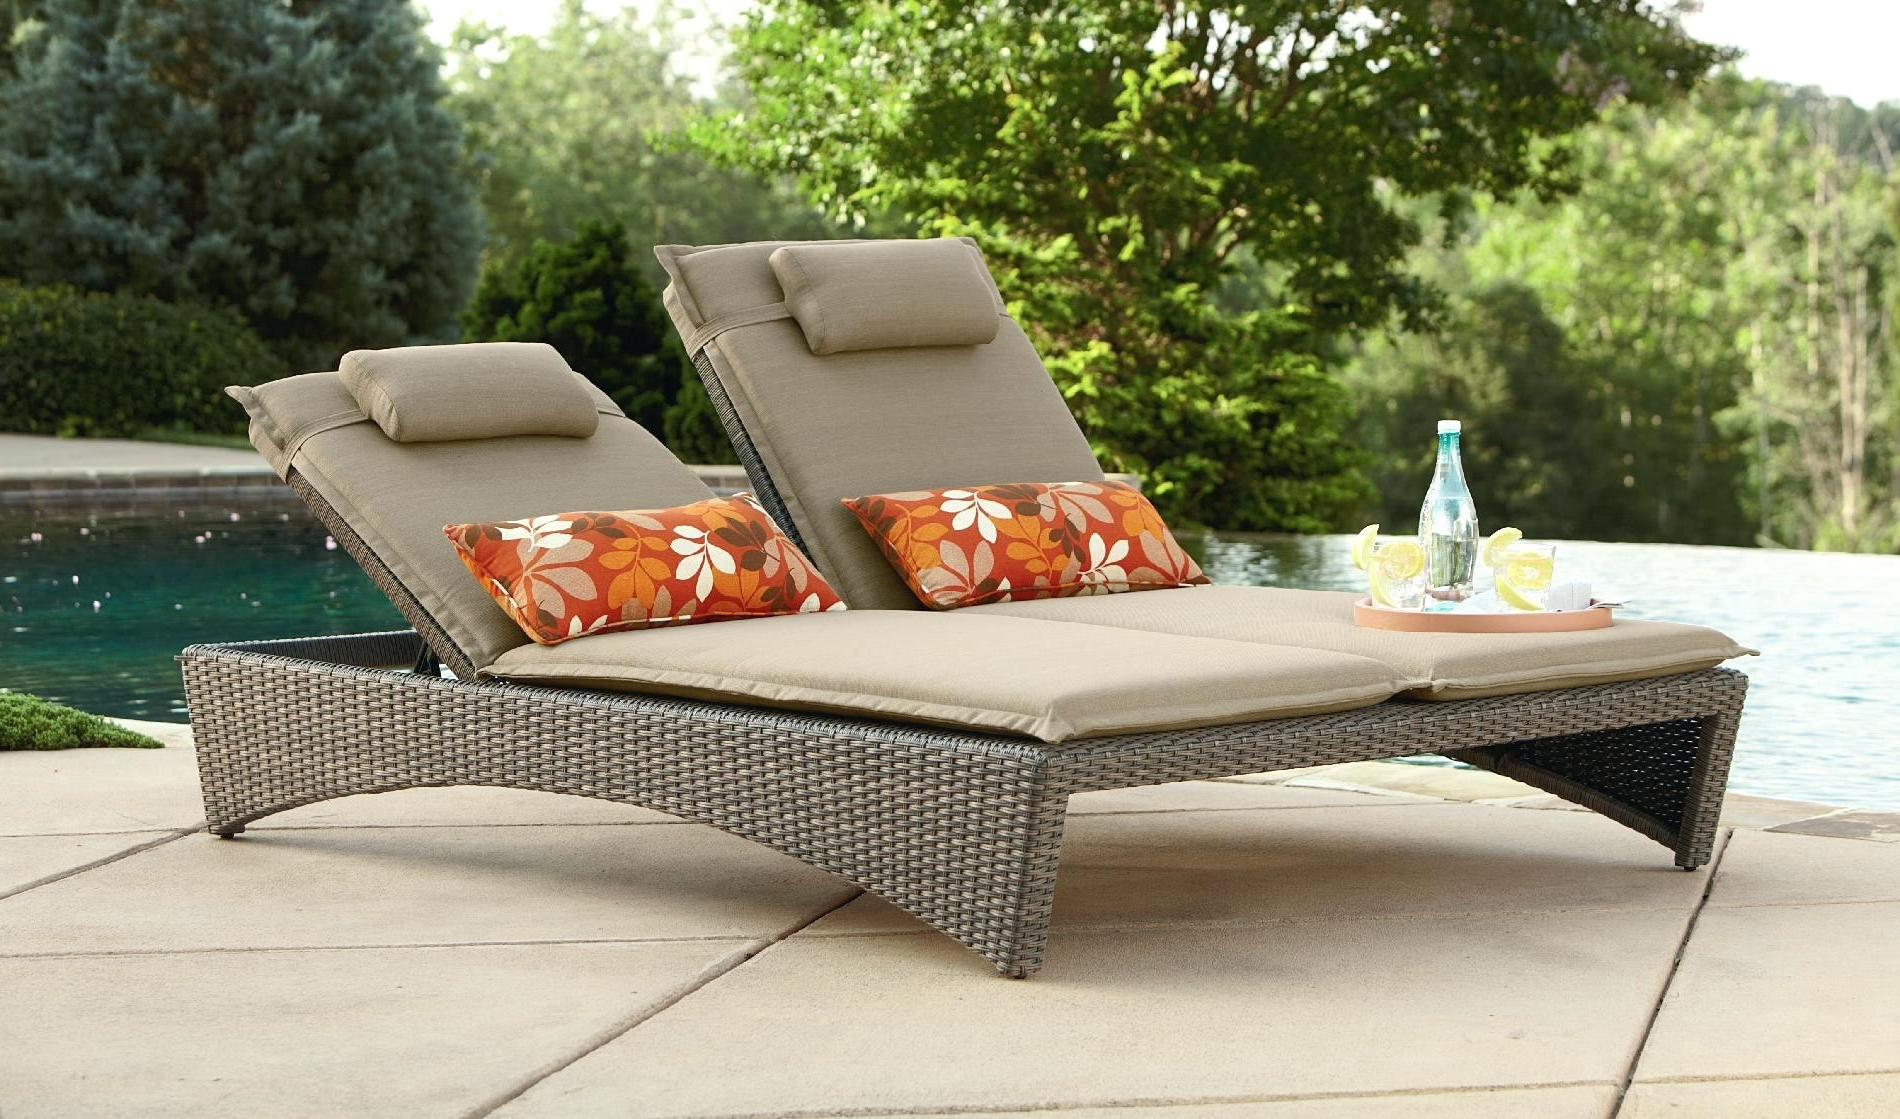 Well Liked Deck Chaise Lounge Chairs In Outdoor Chaise Lounge Chairs Under 100 Awesome Chair For Two (View 7 of 15)